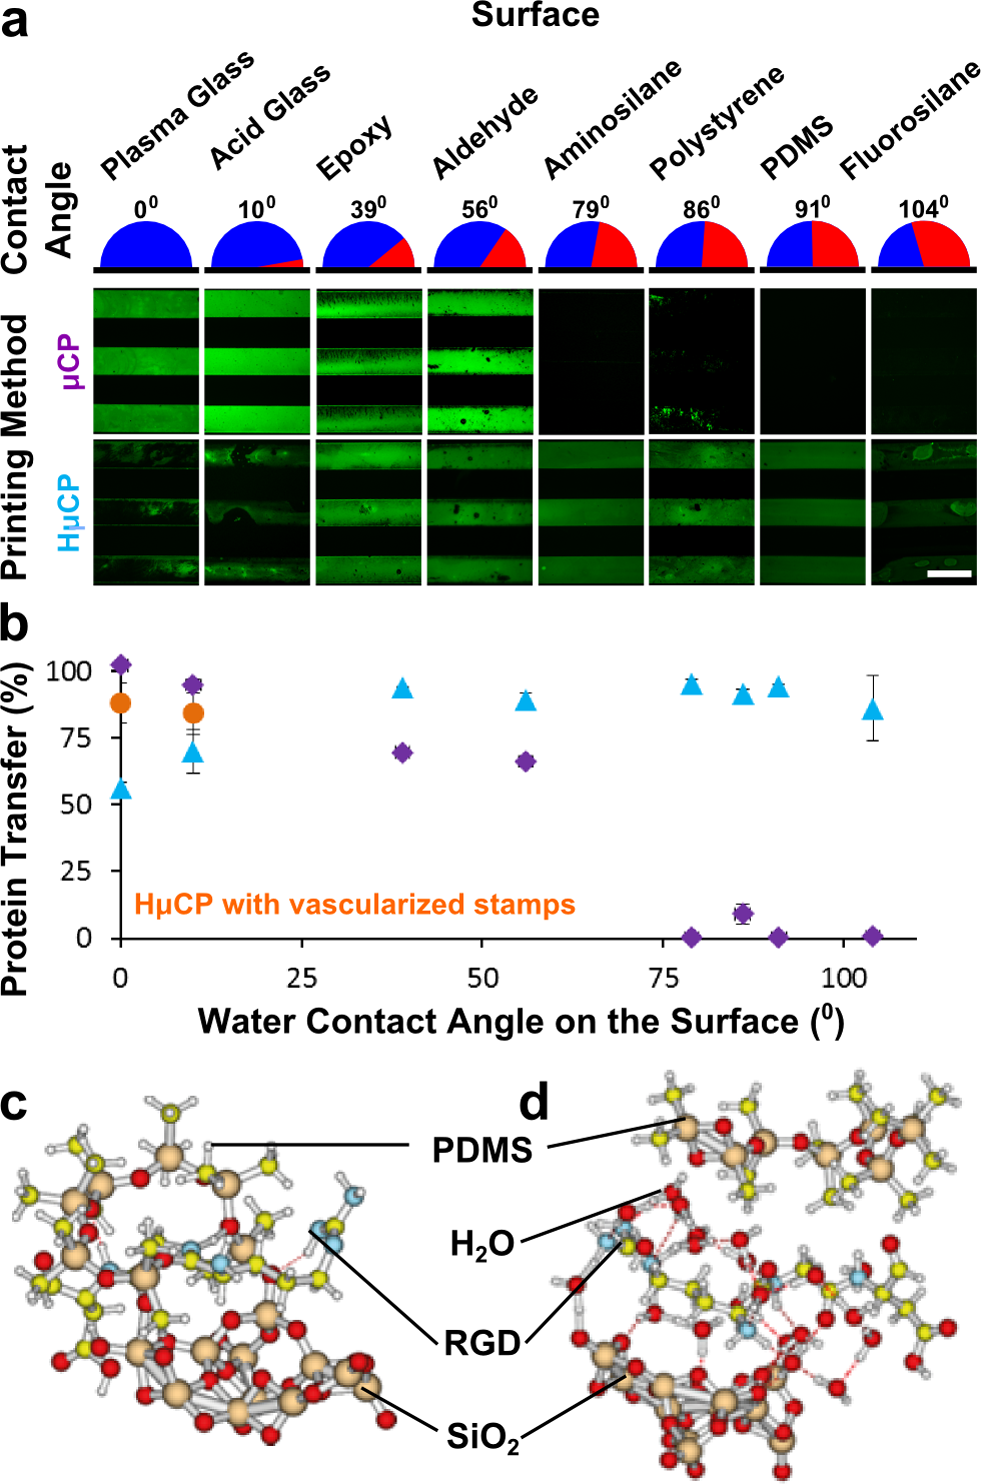 Langmuir Figure 2. Patterning of proteins on different surfaces with varying wettability by μcp and HμCP and models of RGD adhesion in dry and wet state between SiO2 and PDMS.